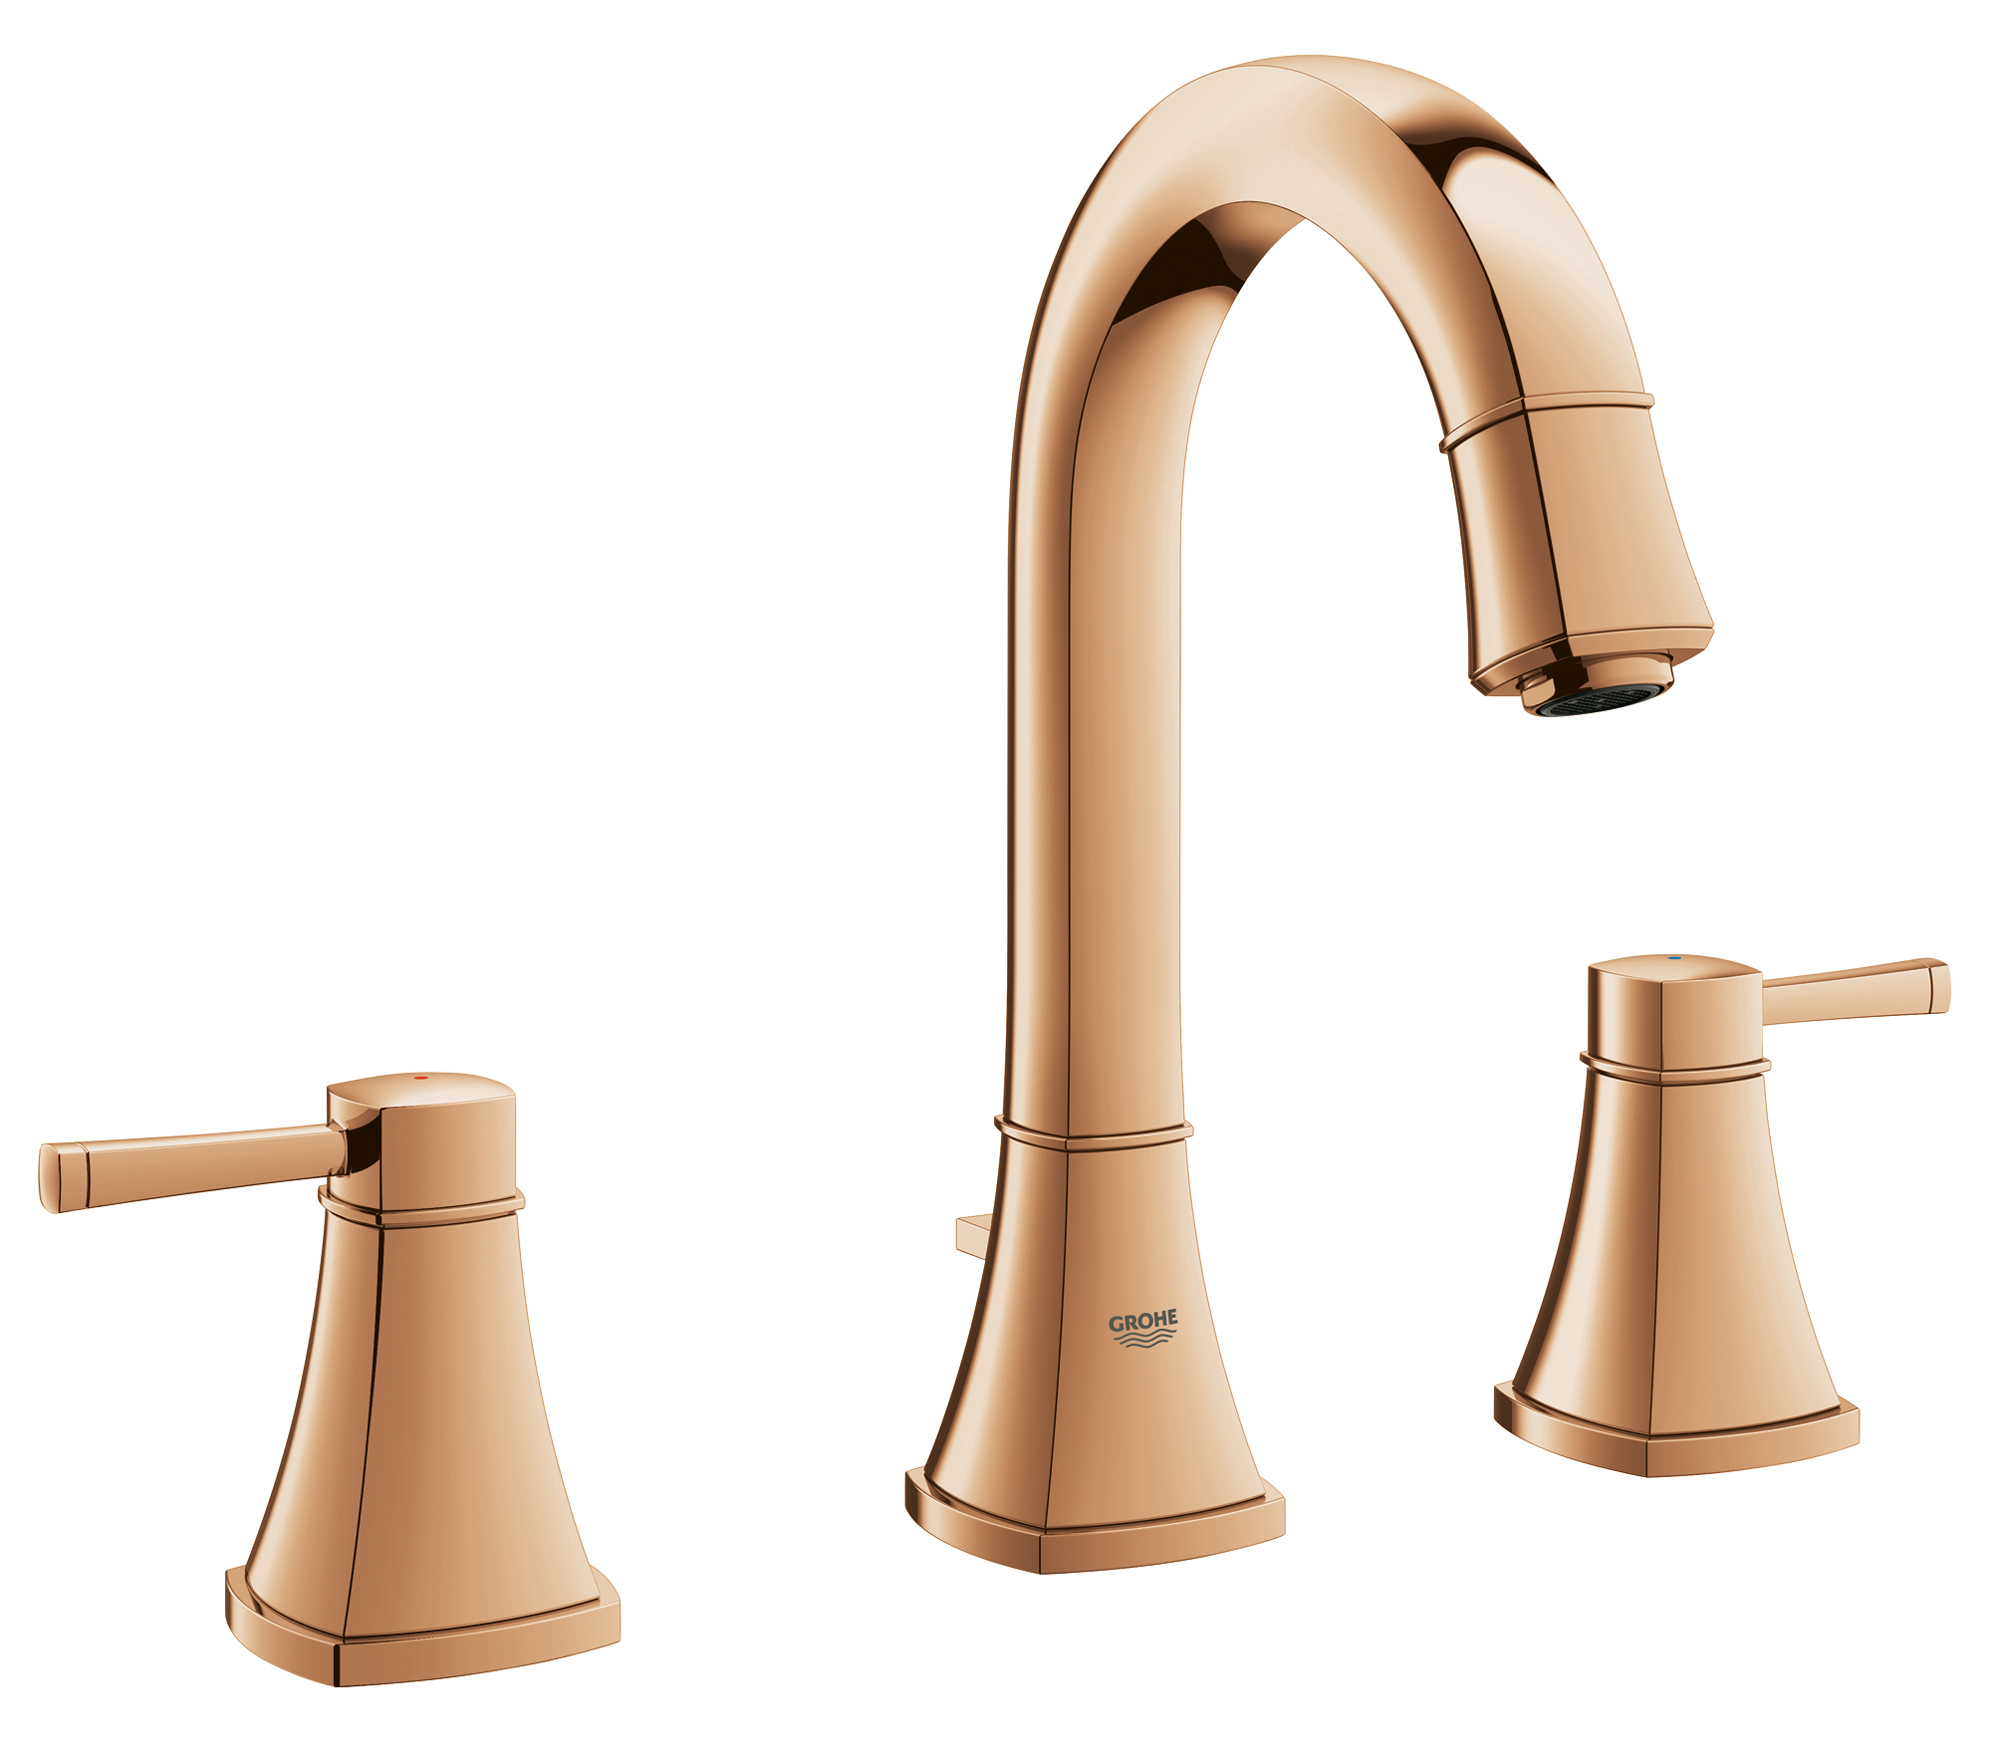 Grohe Adds Feminine Touch With Rose Gold Finish Jlc